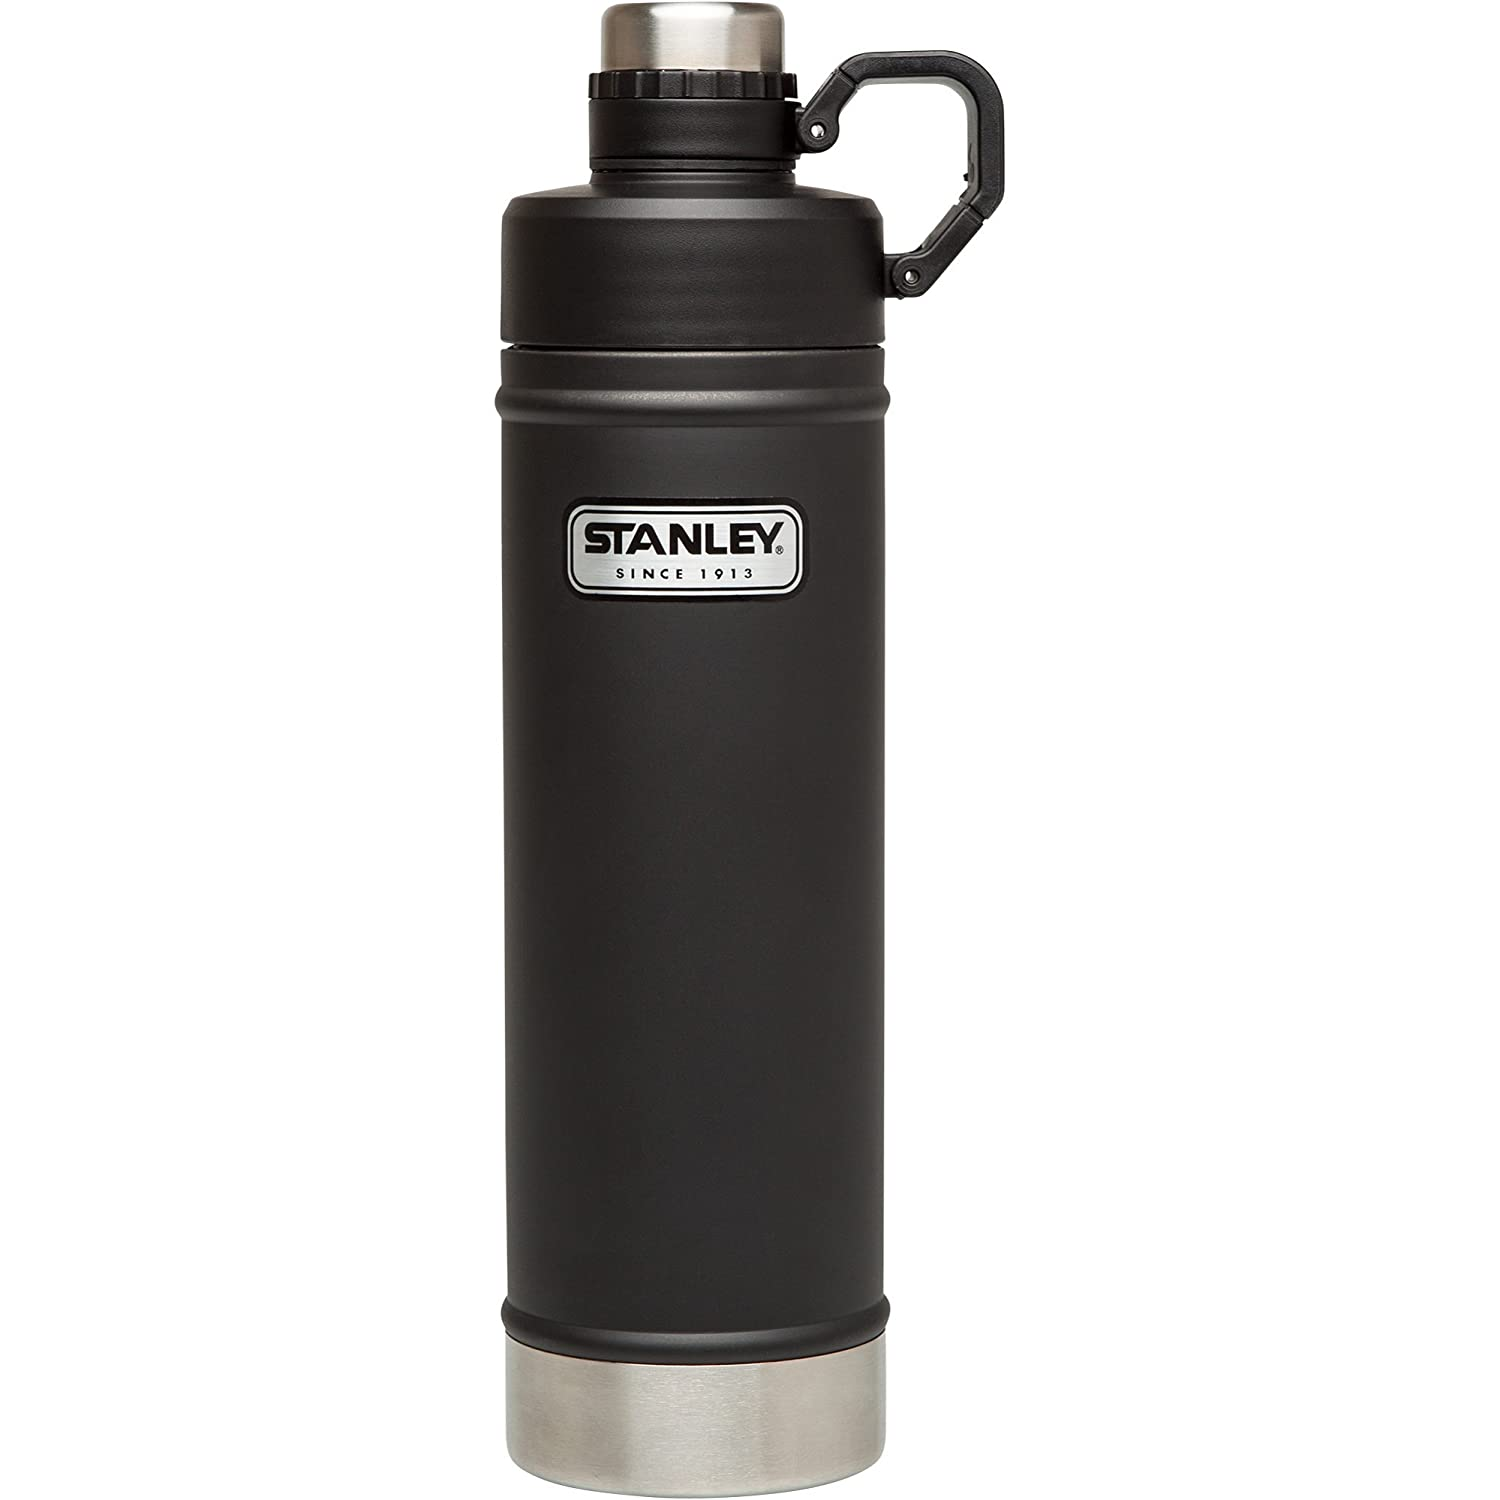 Stanley Vacuum Insulated Water Bottle 18oz, 25oz, 36oz